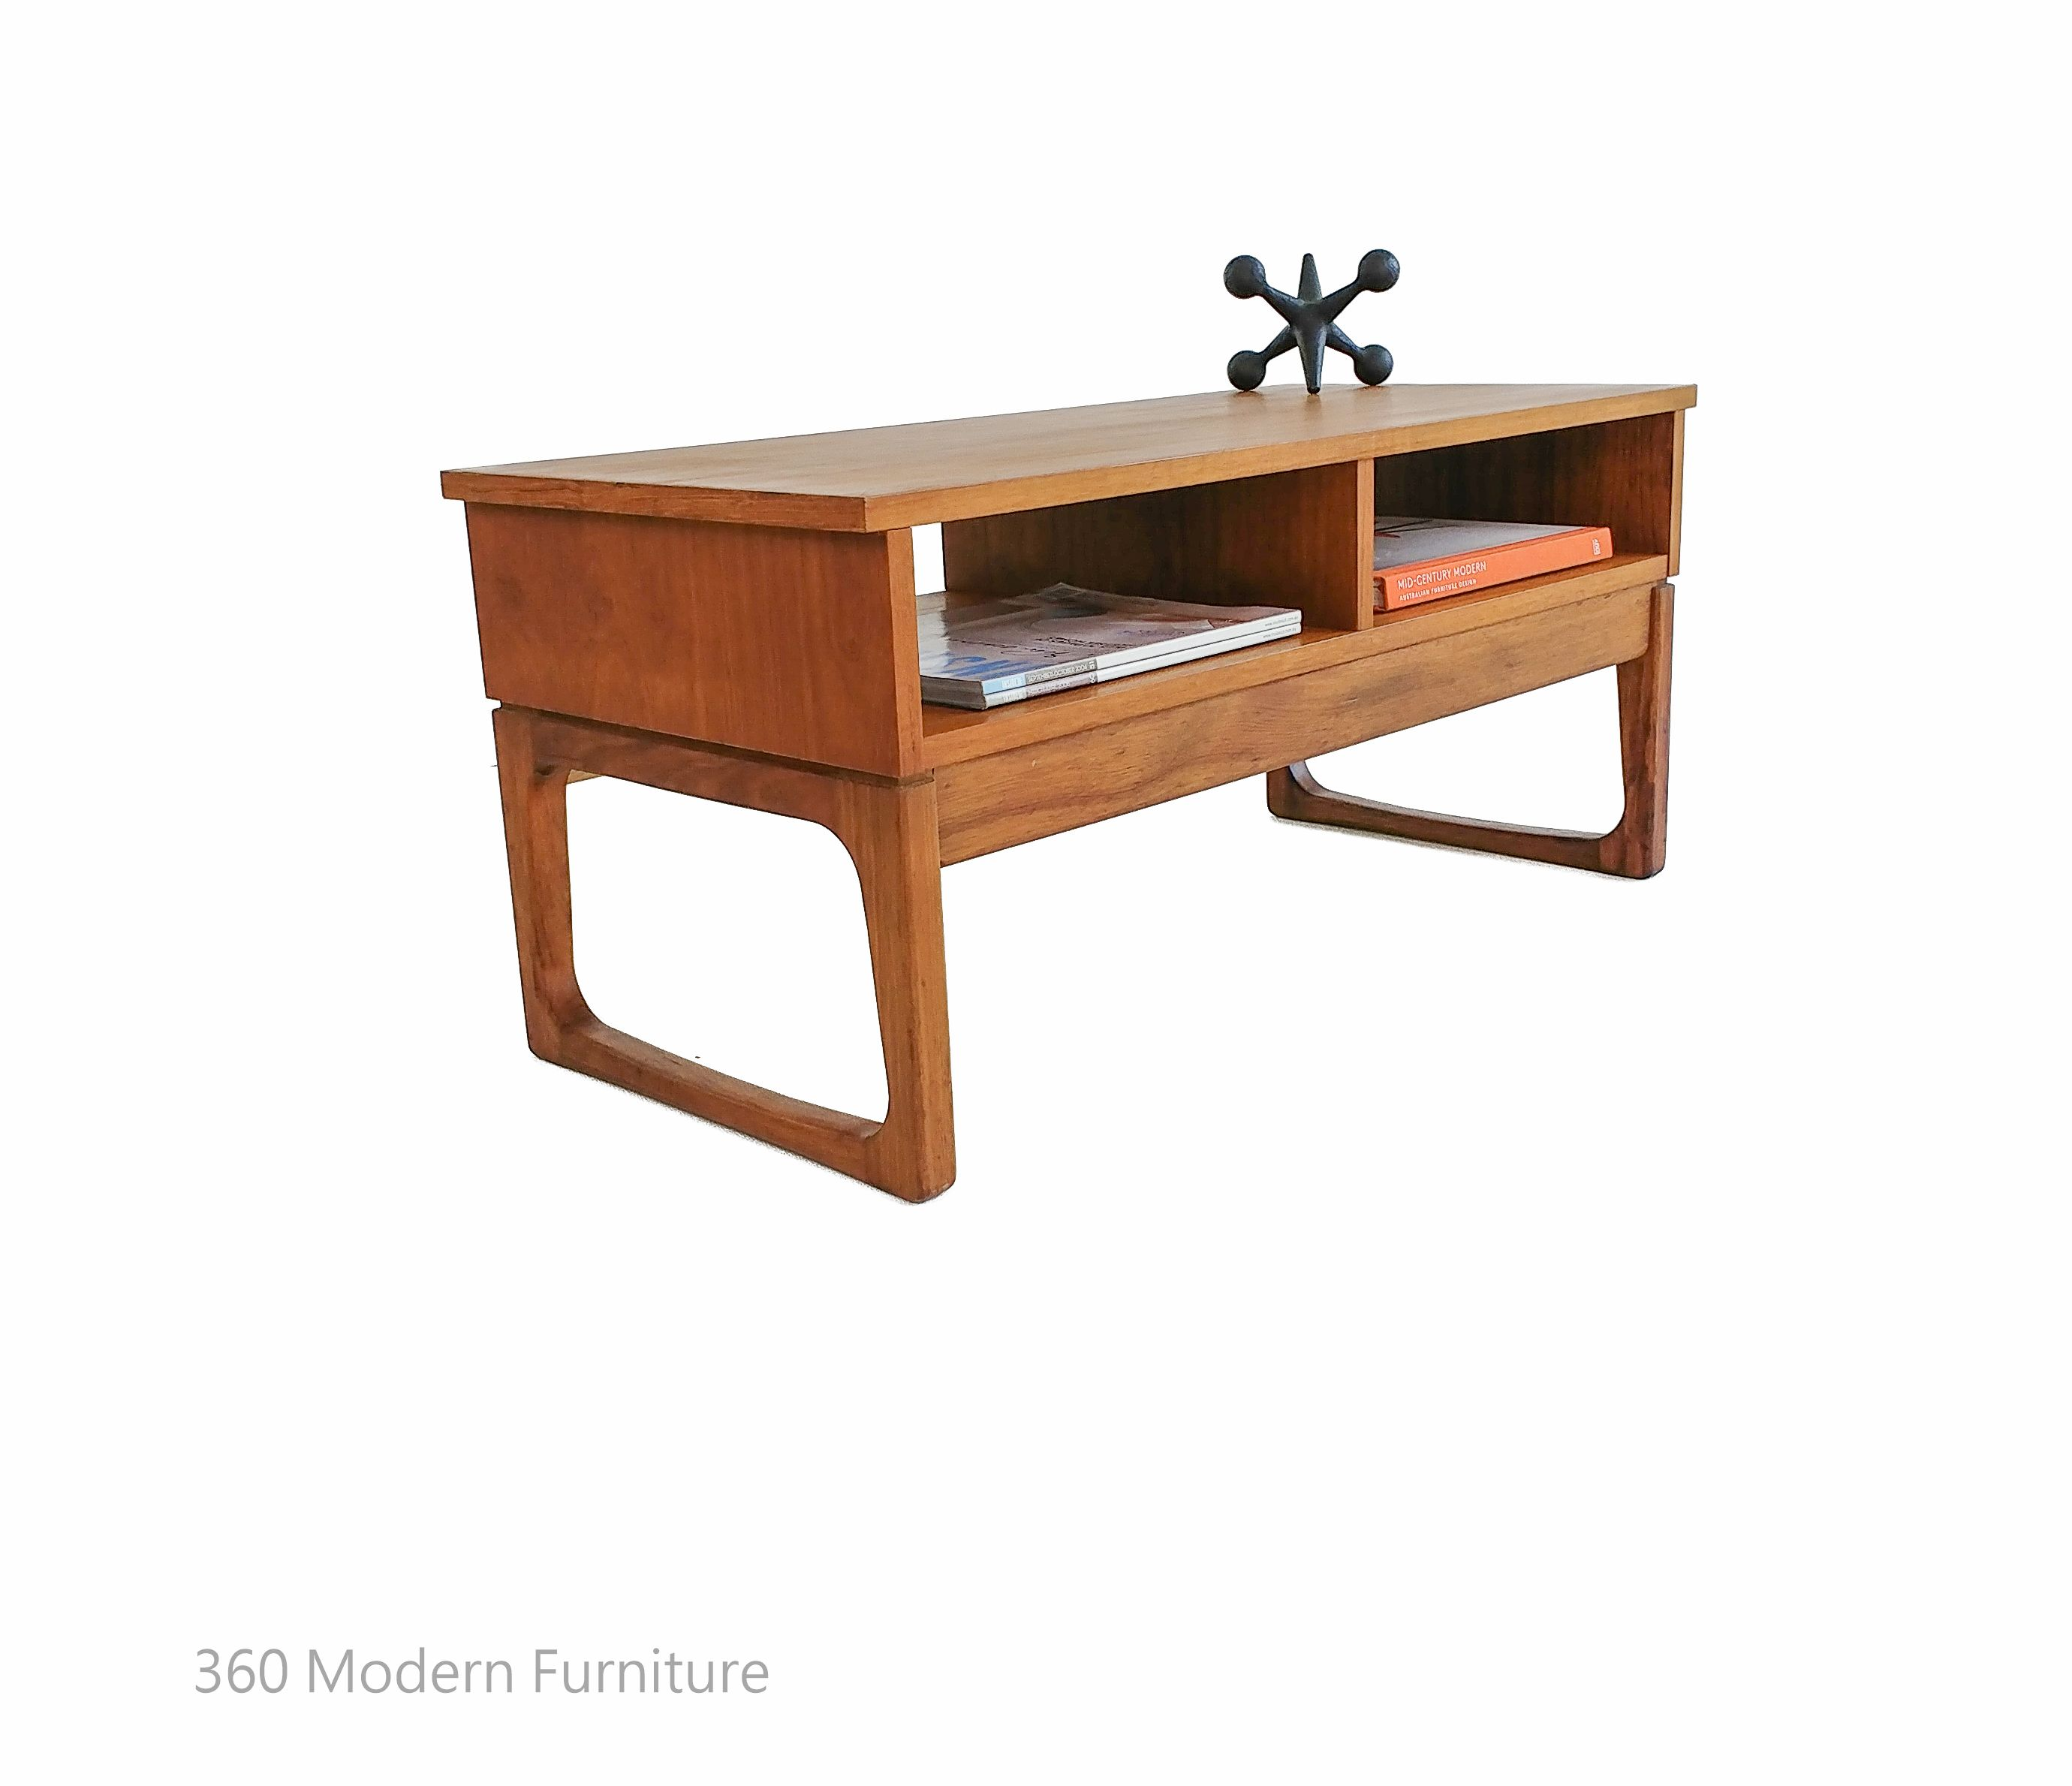 Affordable Retro Furniture: Mid Century Easden Coffee Table Teak Magazine Rack Retro